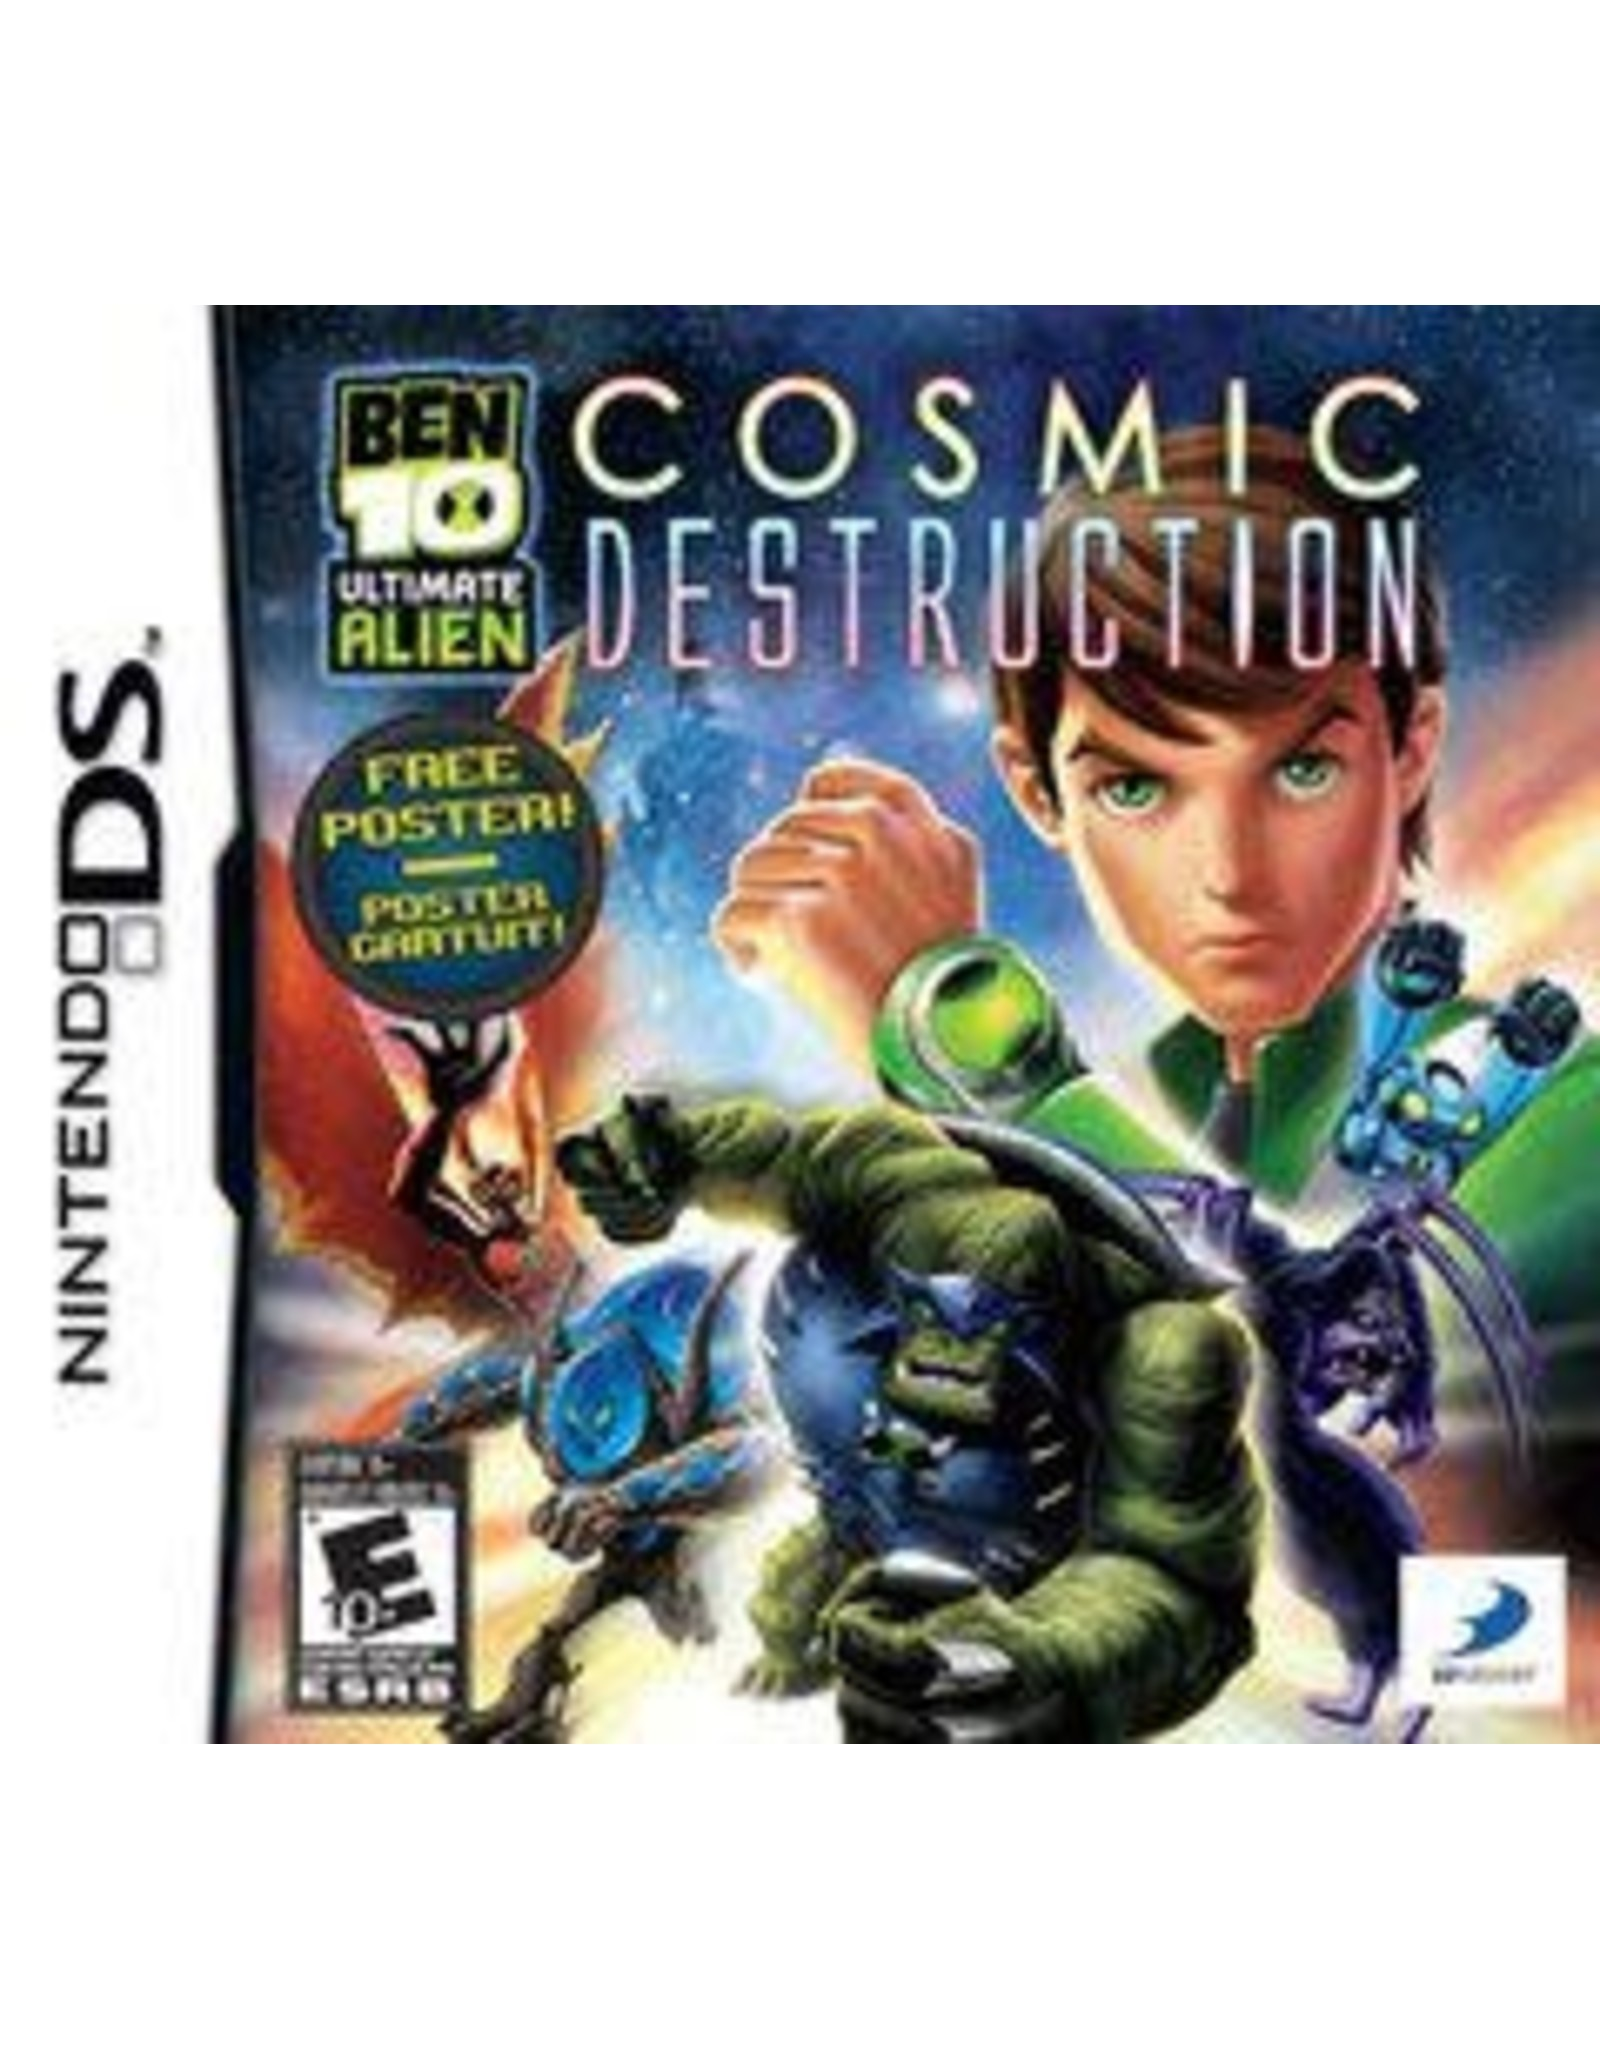 Nintendo DS Ben 10: Ultimate Alien Cosmic Destruction